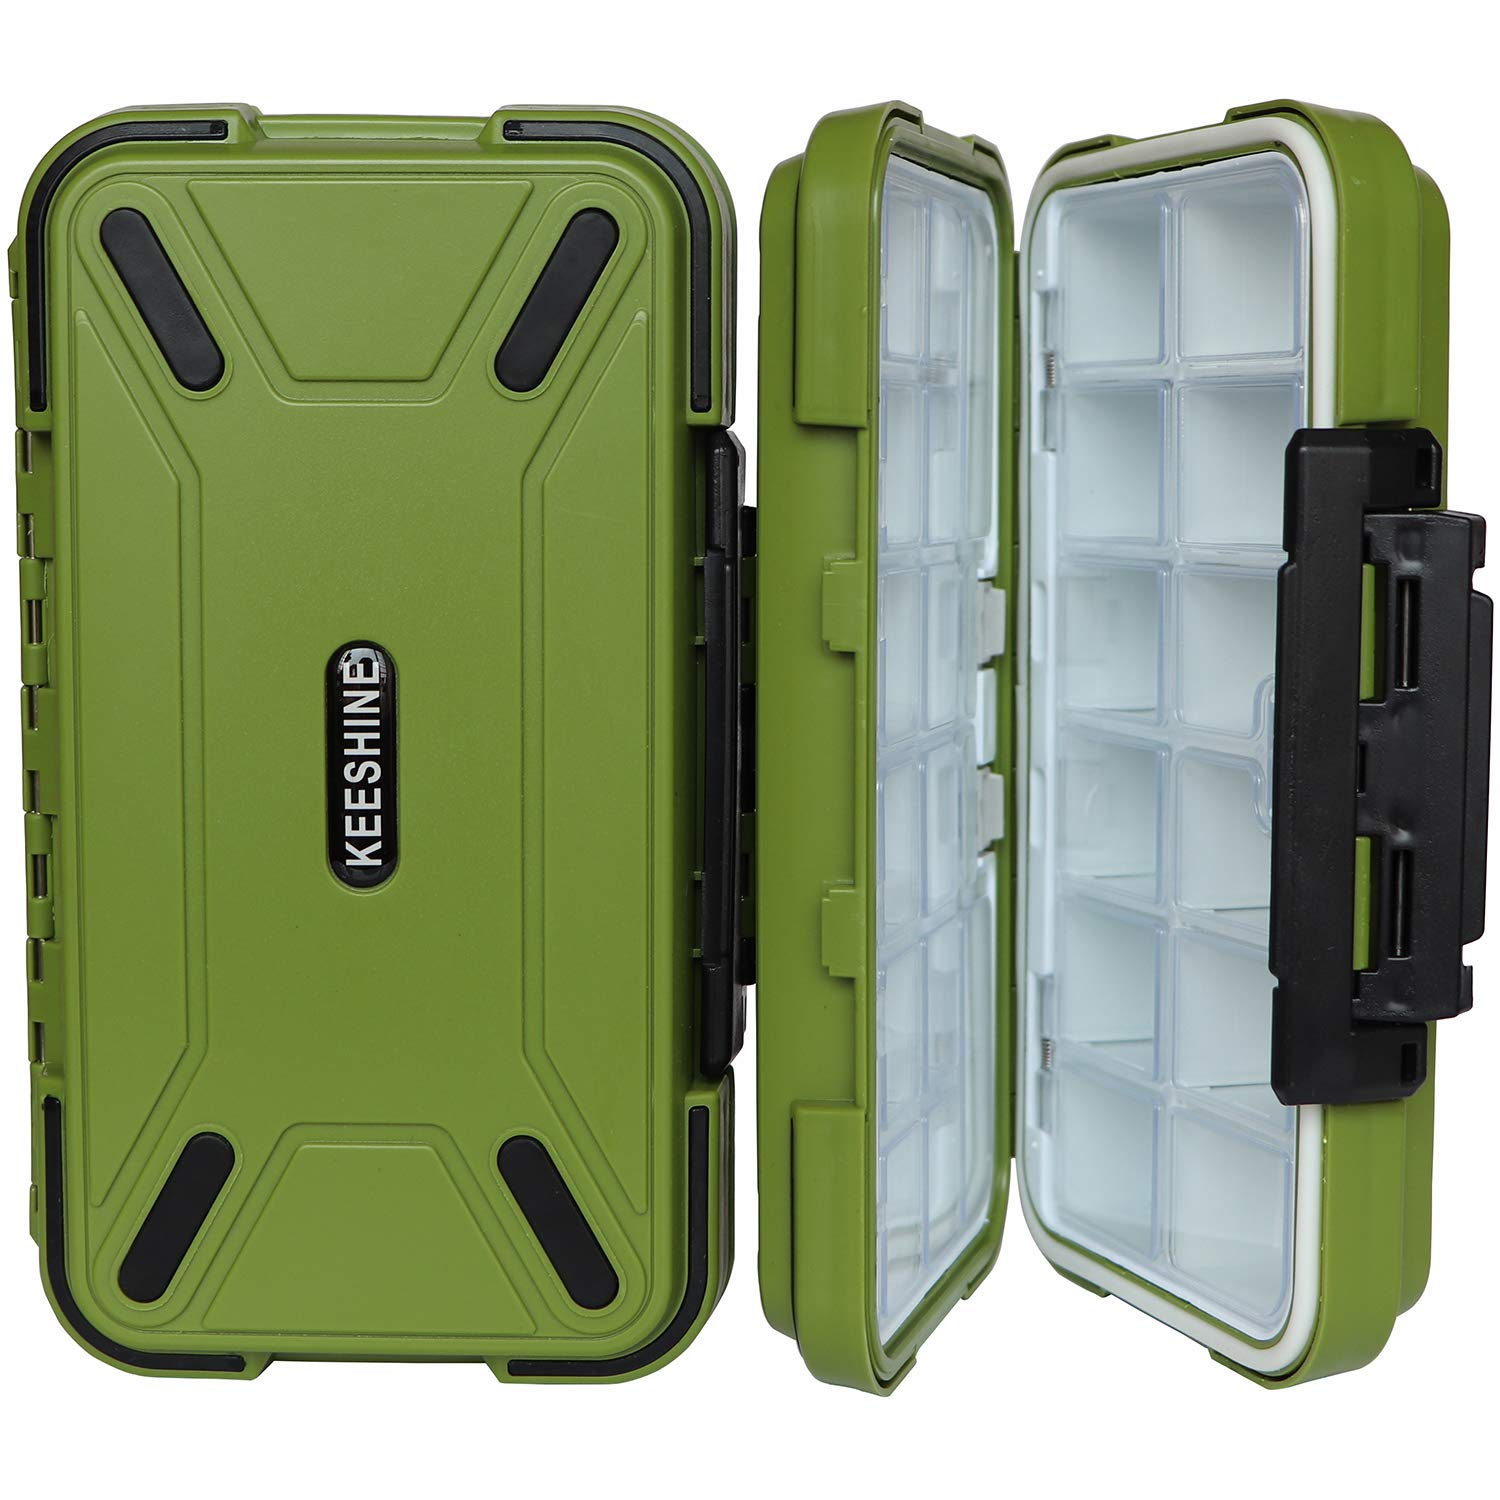 KEESHINE Waterproof Fishing Tackle Box, Storage Box, Plastic Fishing Lure Box, Removable Grid Storage Jewelry Organizer Making Kit Container for Lure Hook Beads Earring Tool(Green) by KEESHINE